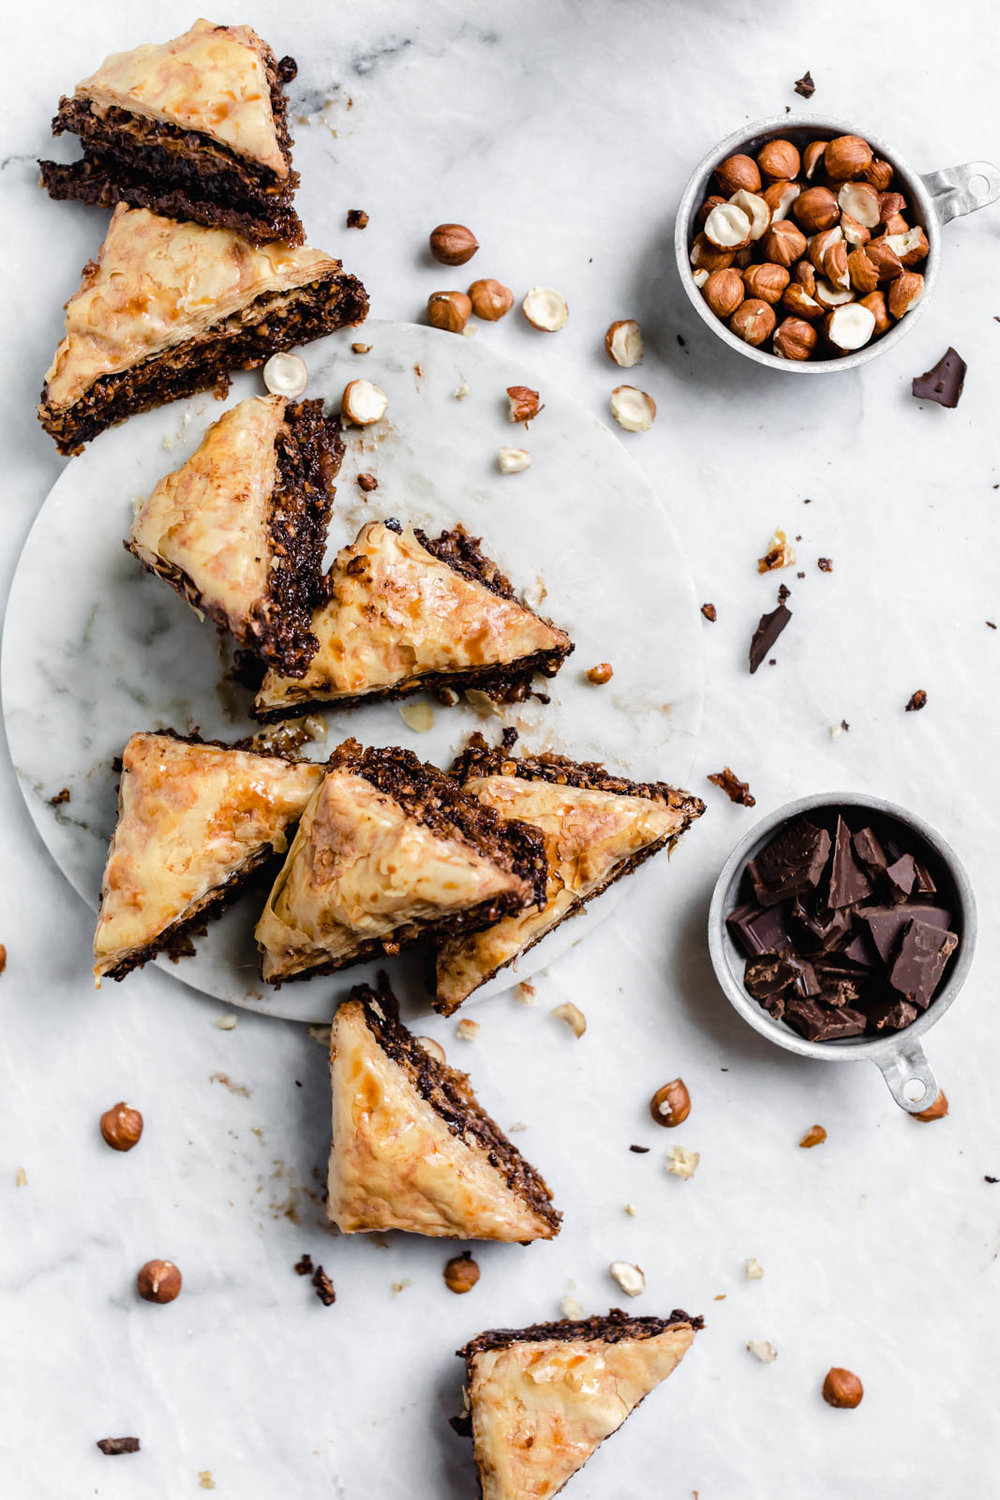 Chocolate-Hazelnut-Baklava